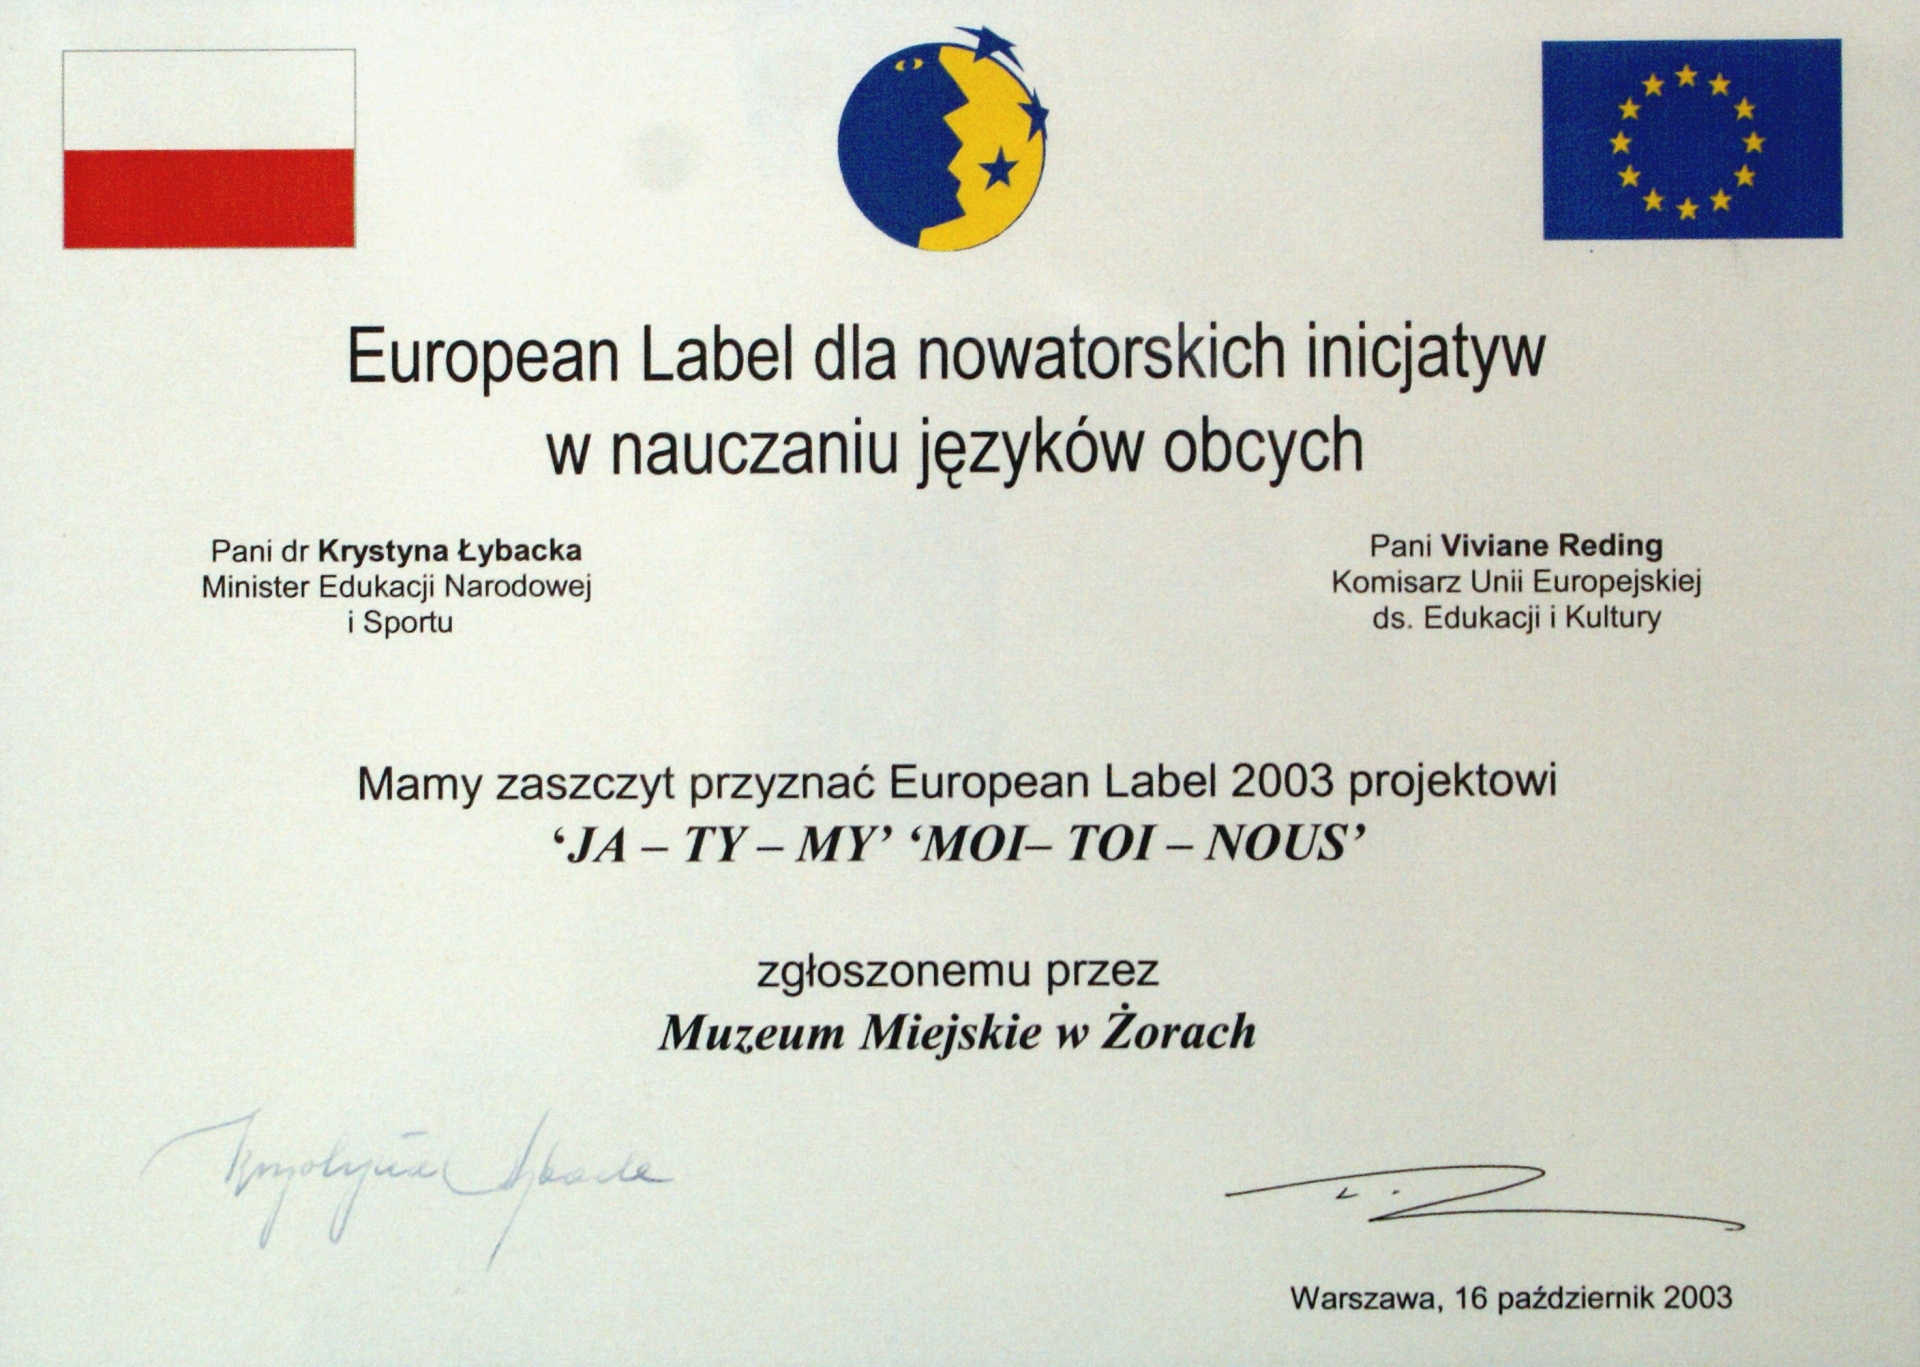 European Label 2003